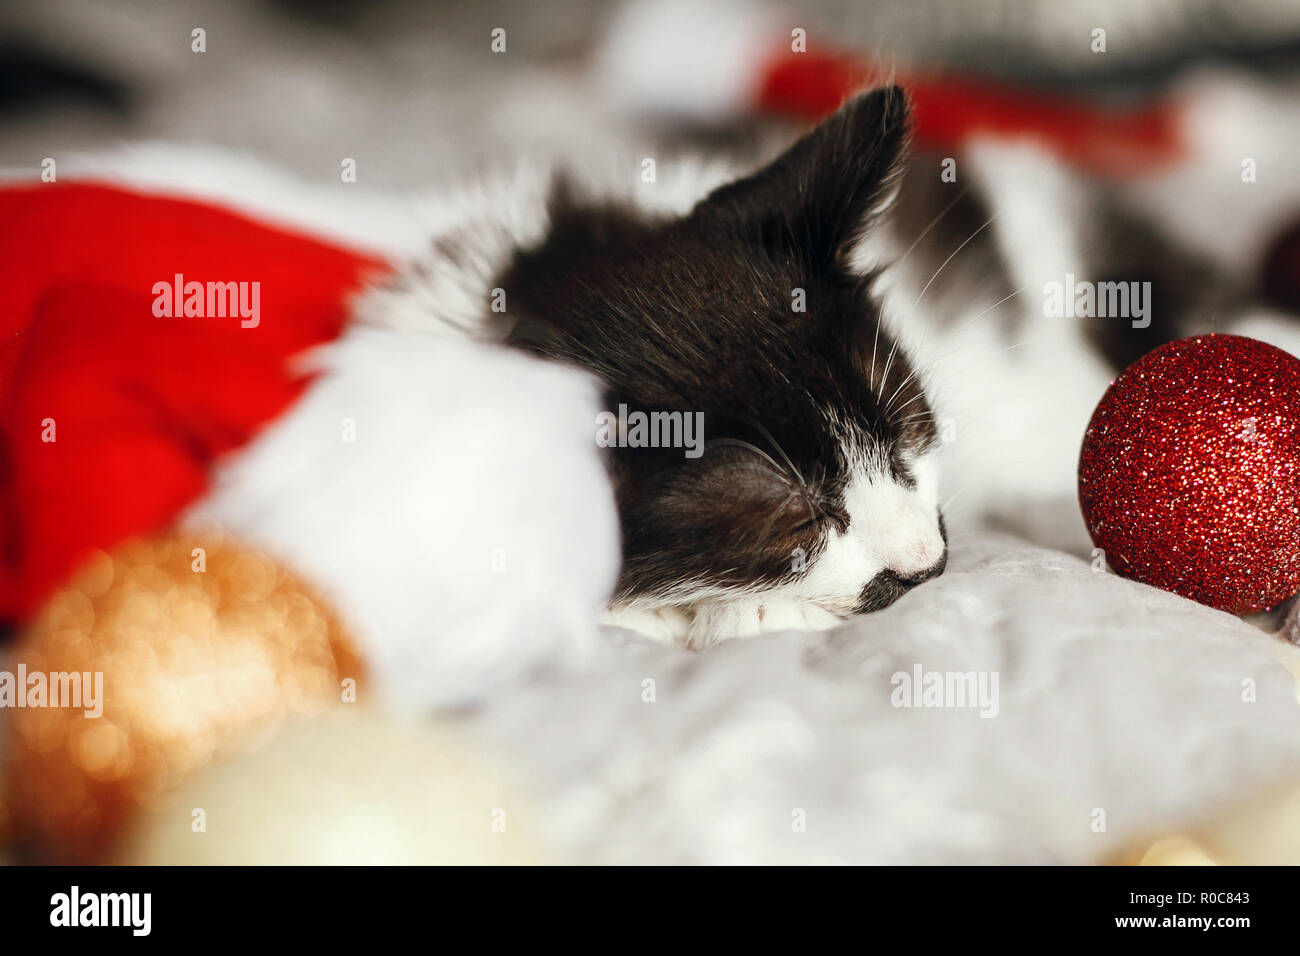 Cute kitty sleeping in santa hat on bed with gold and red christmas ornaments in festive room. Merry Christmas concept. Adorable funny kitten napping. - Stock Image